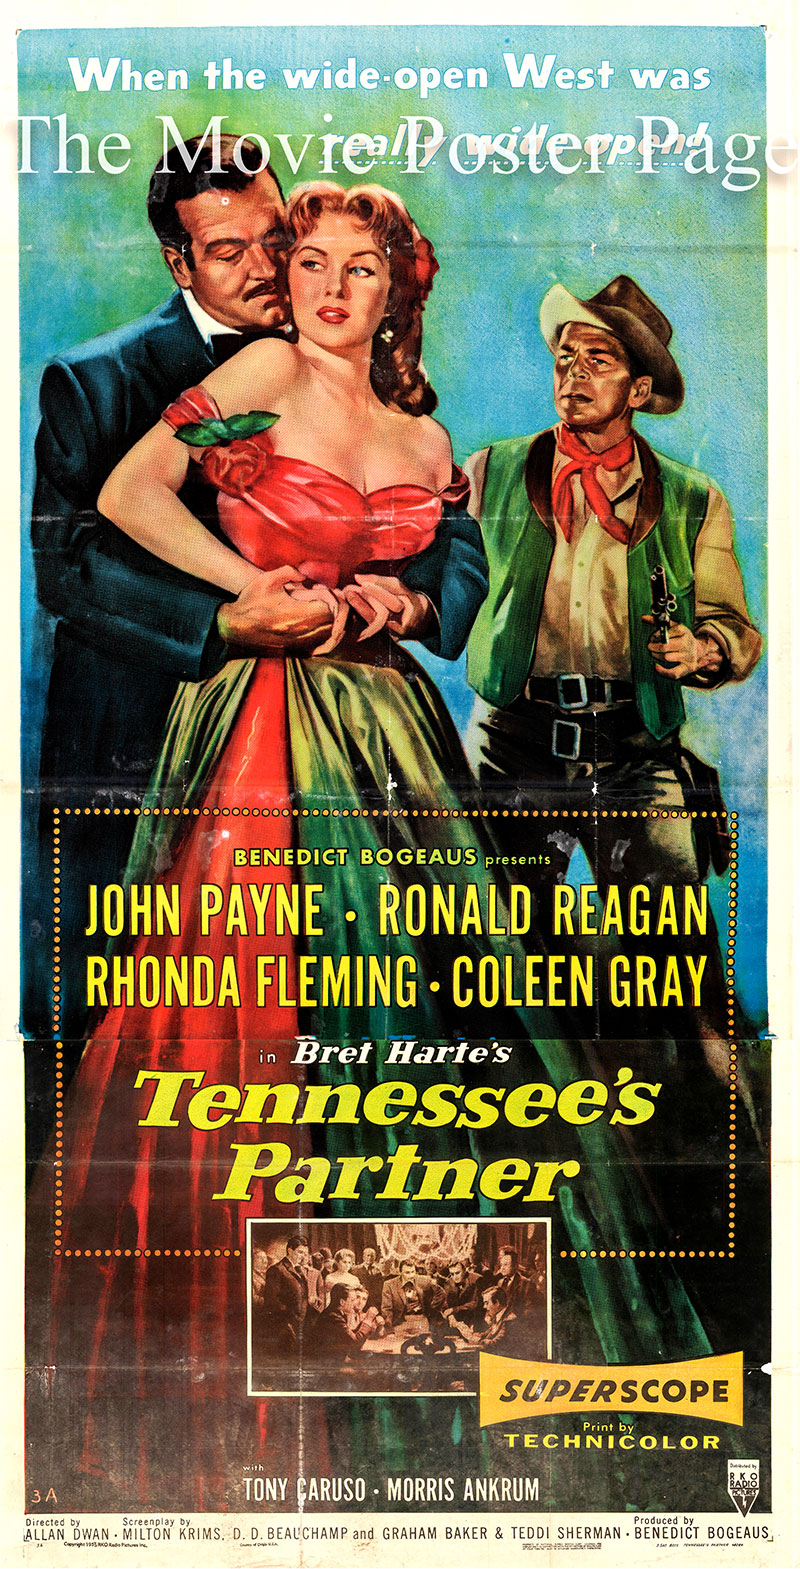 Pictured is the US three-sheet promotional poster for the 1955 Allan Dwan film Tennesses Partner starring Rhonda Fleming and Ronald Reagan.